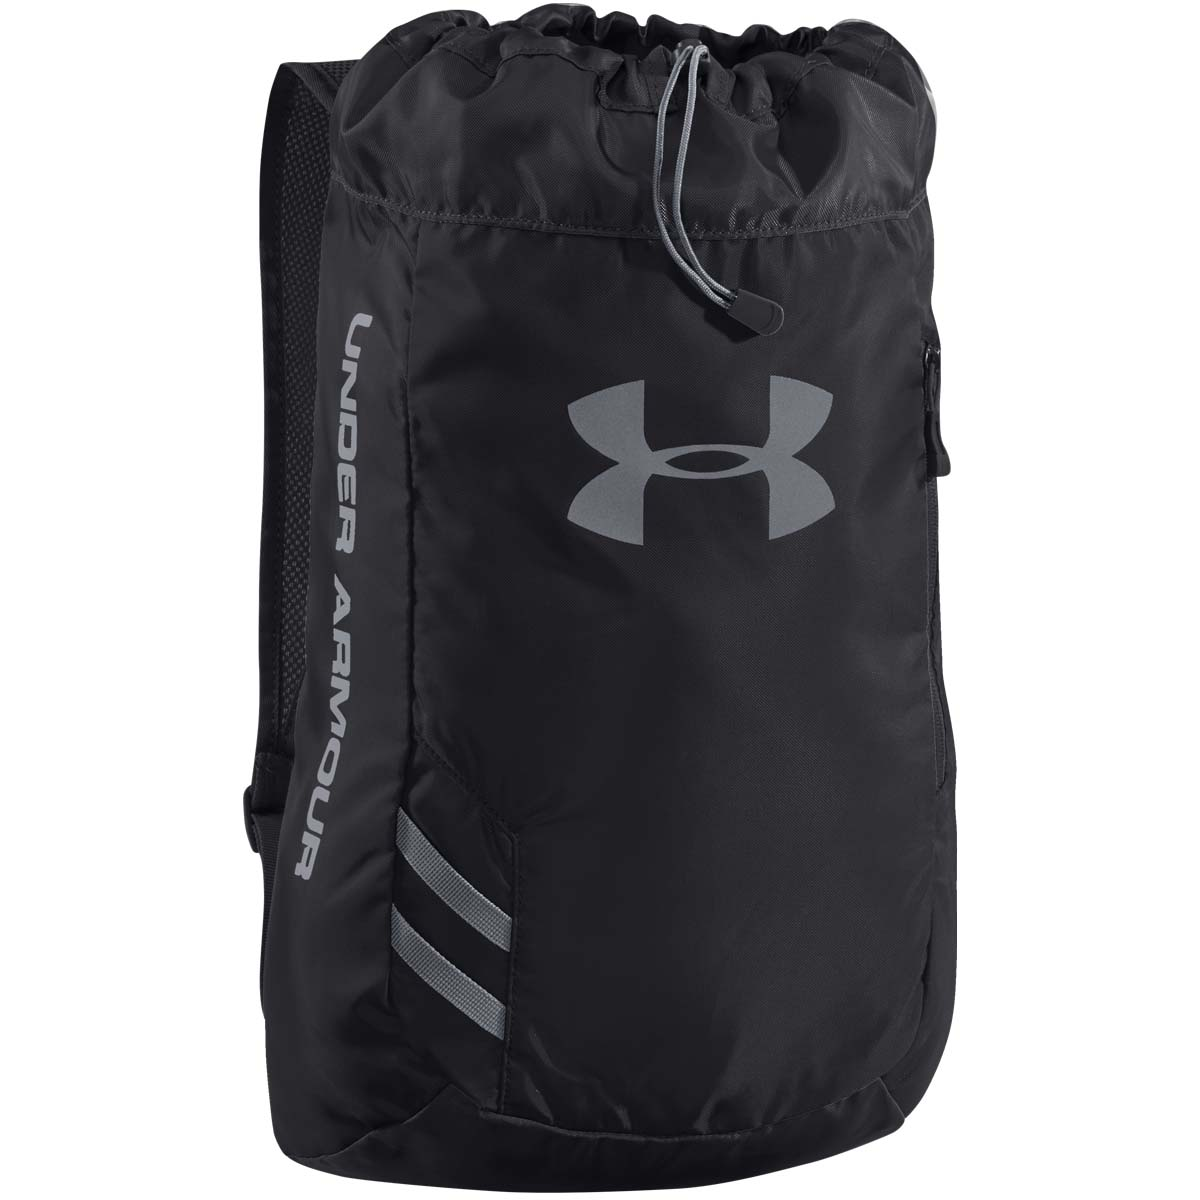 Under Armour 2017 UA Trance Sackpack Drawstring Bag Rucksack Sport ...